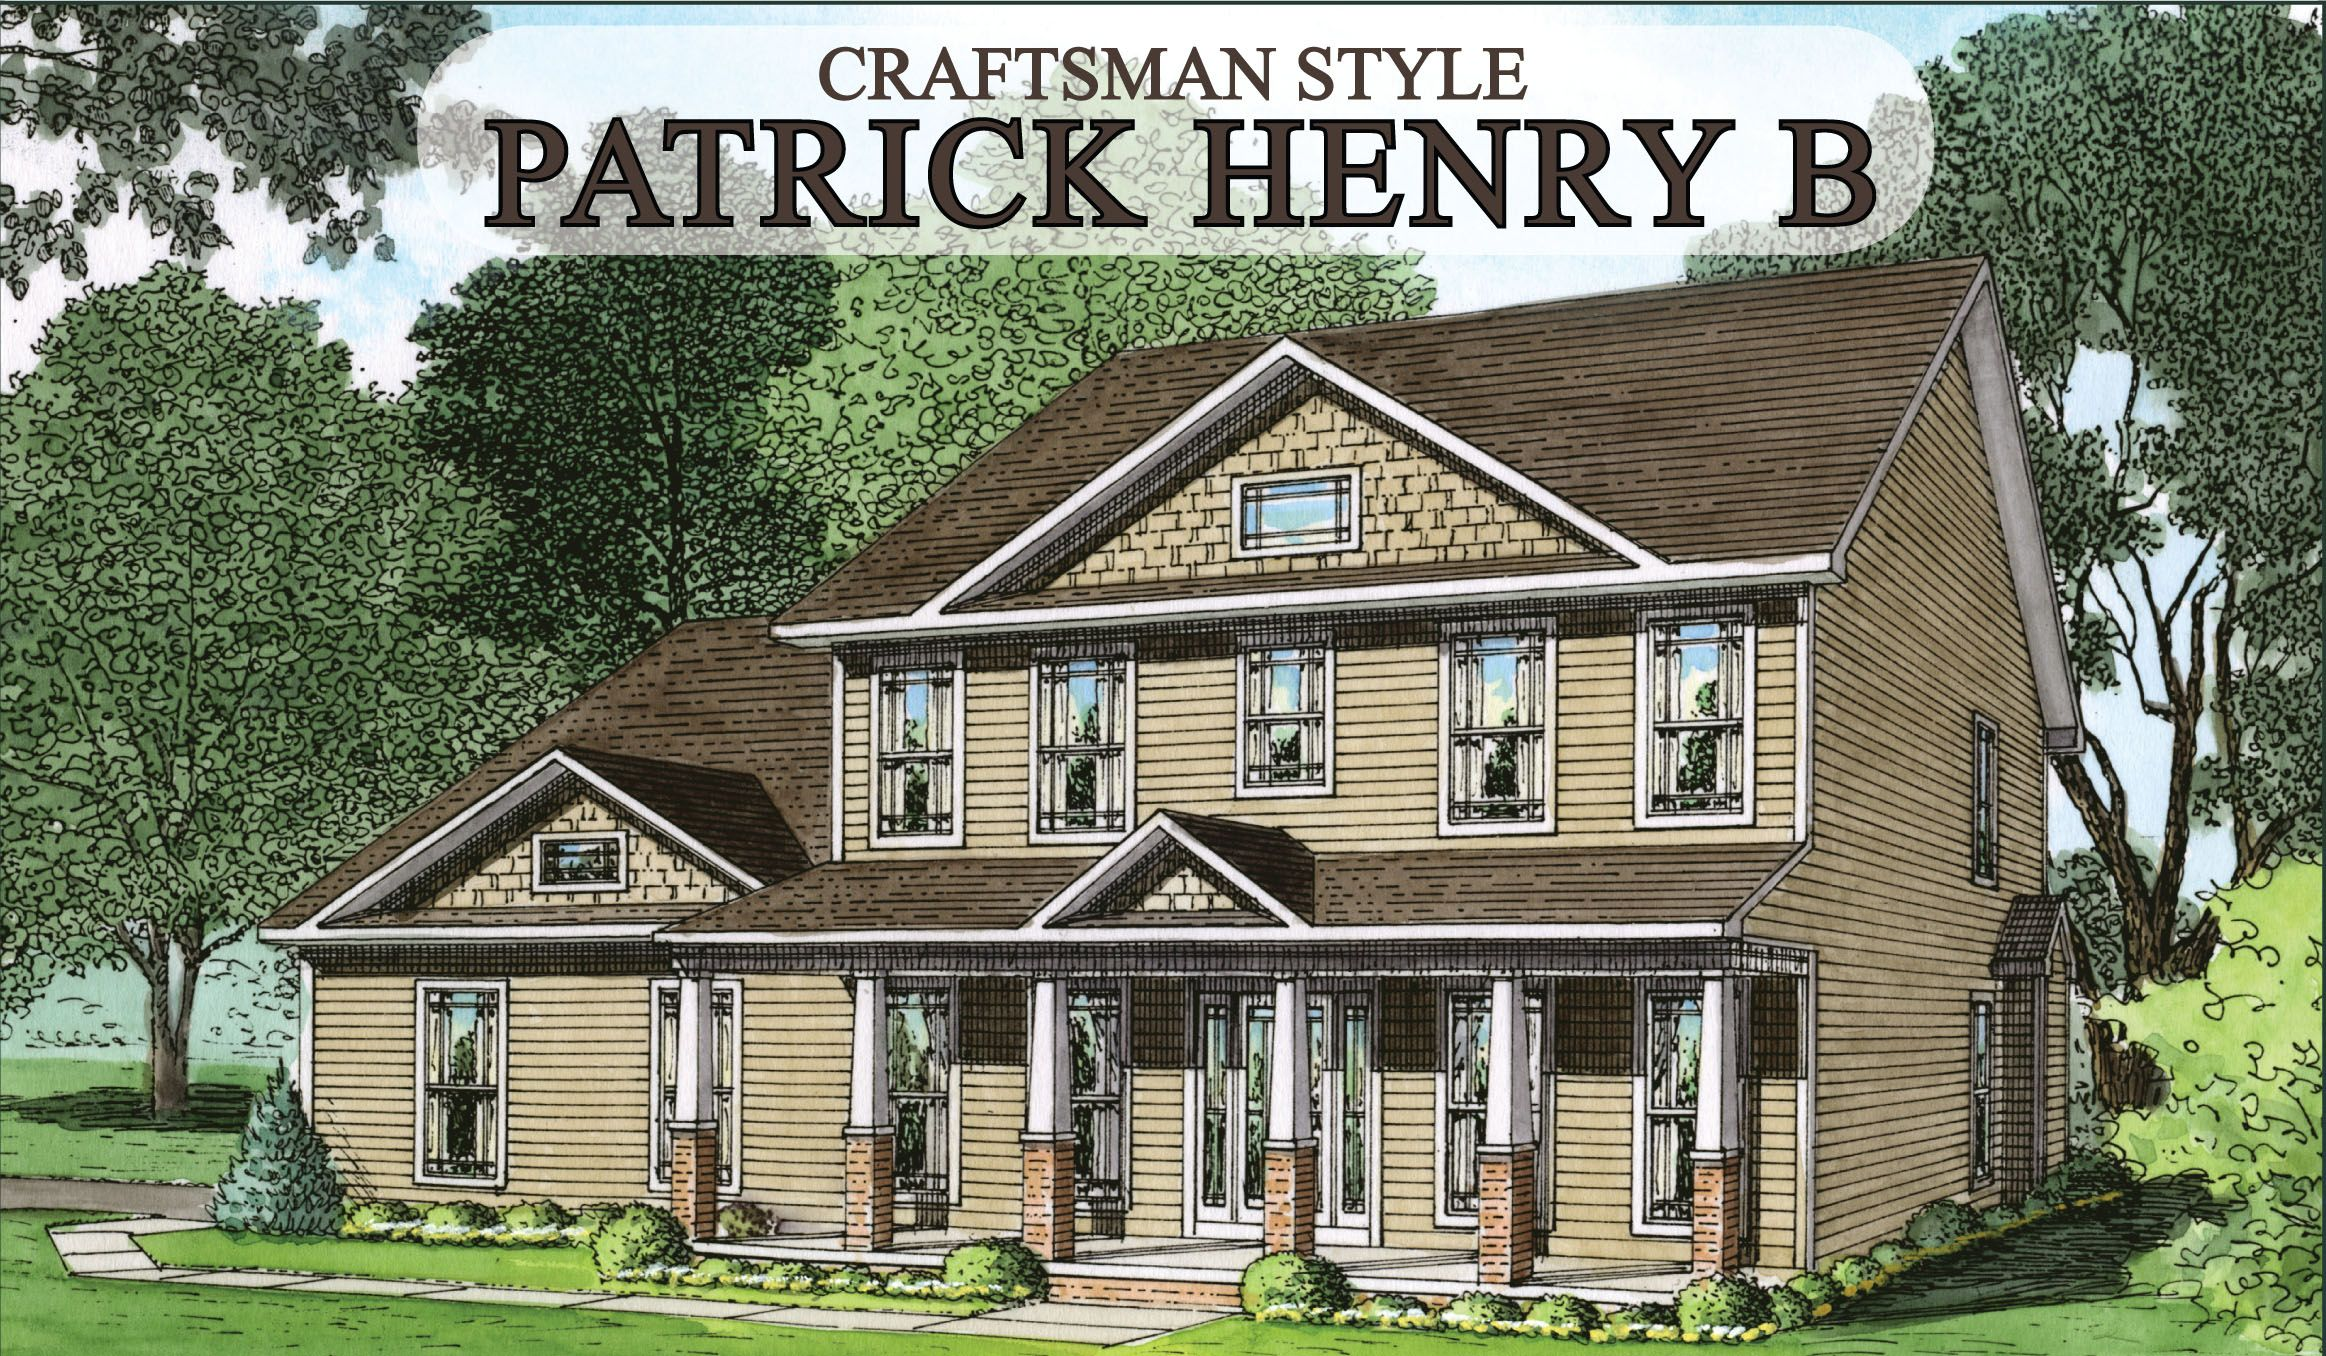 colonial craftsman house styles google search ideas for colonial craftsman house styles google search